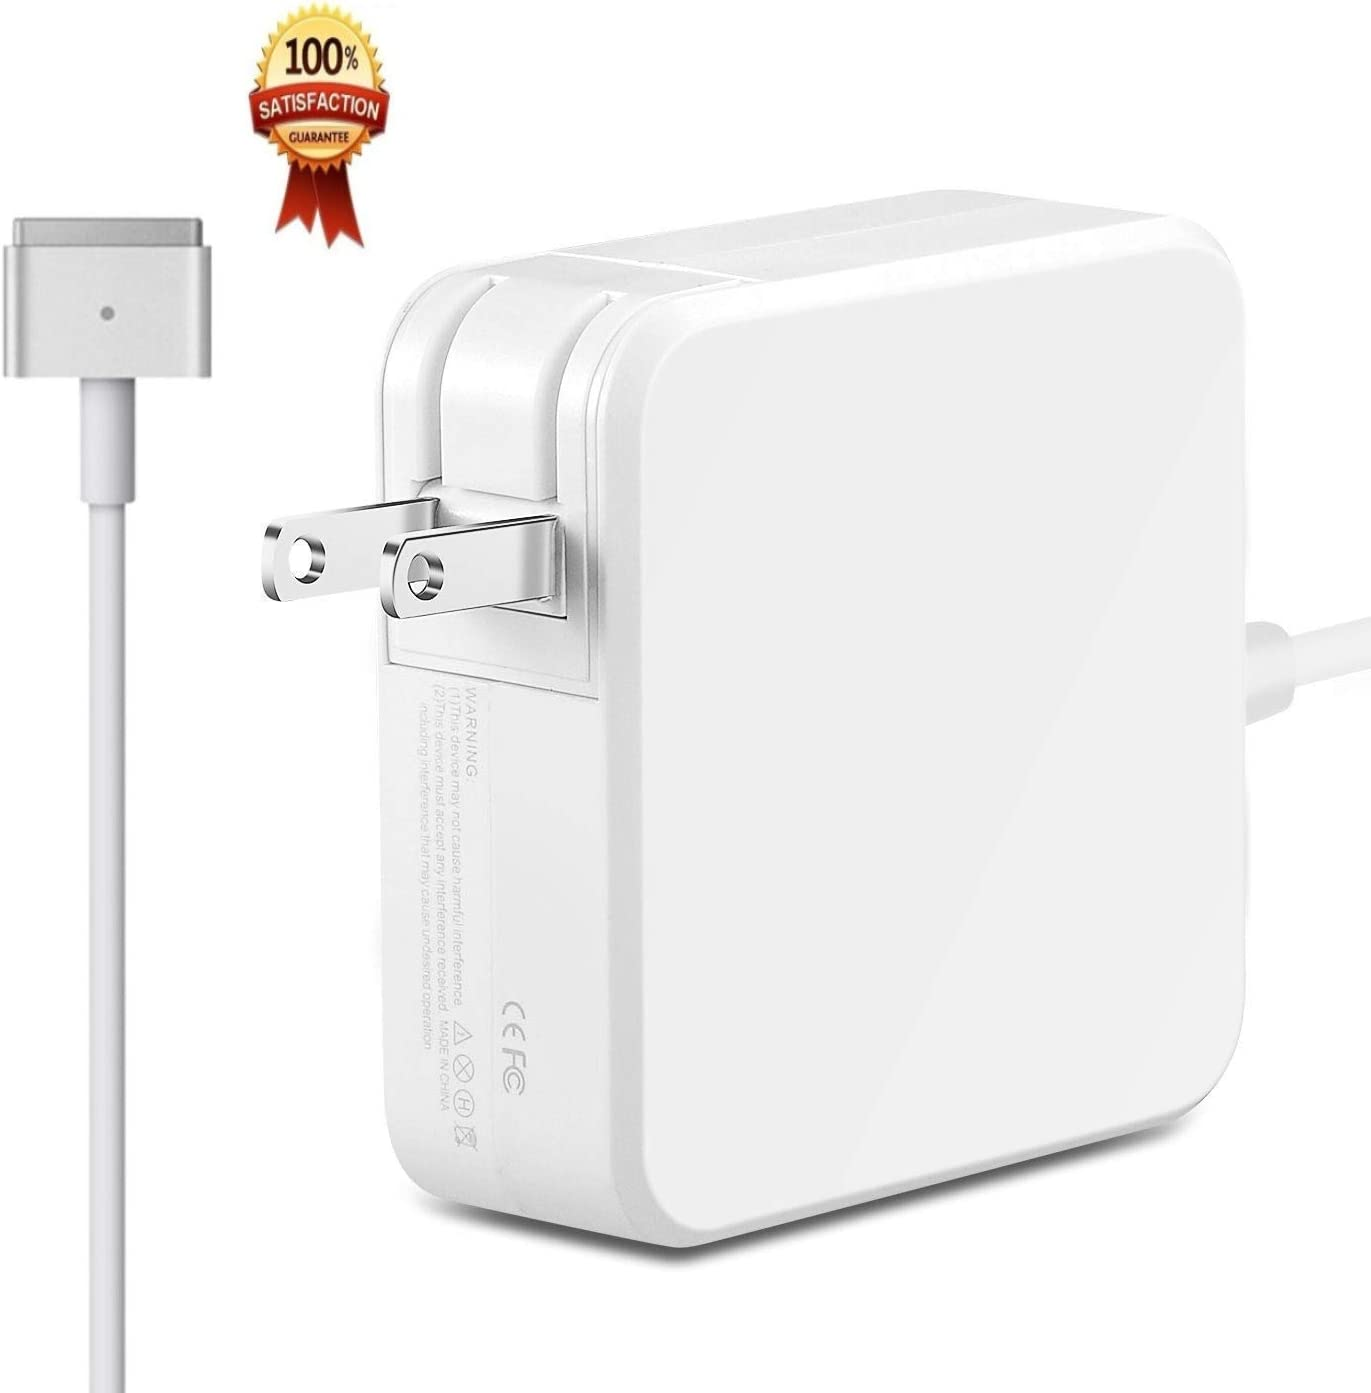 New 60Watt Magnetic (T-Tip) AC Power Adapter Charger Compatible with Macbooks Air, MacBook and MacBook Pro (Late 2012)